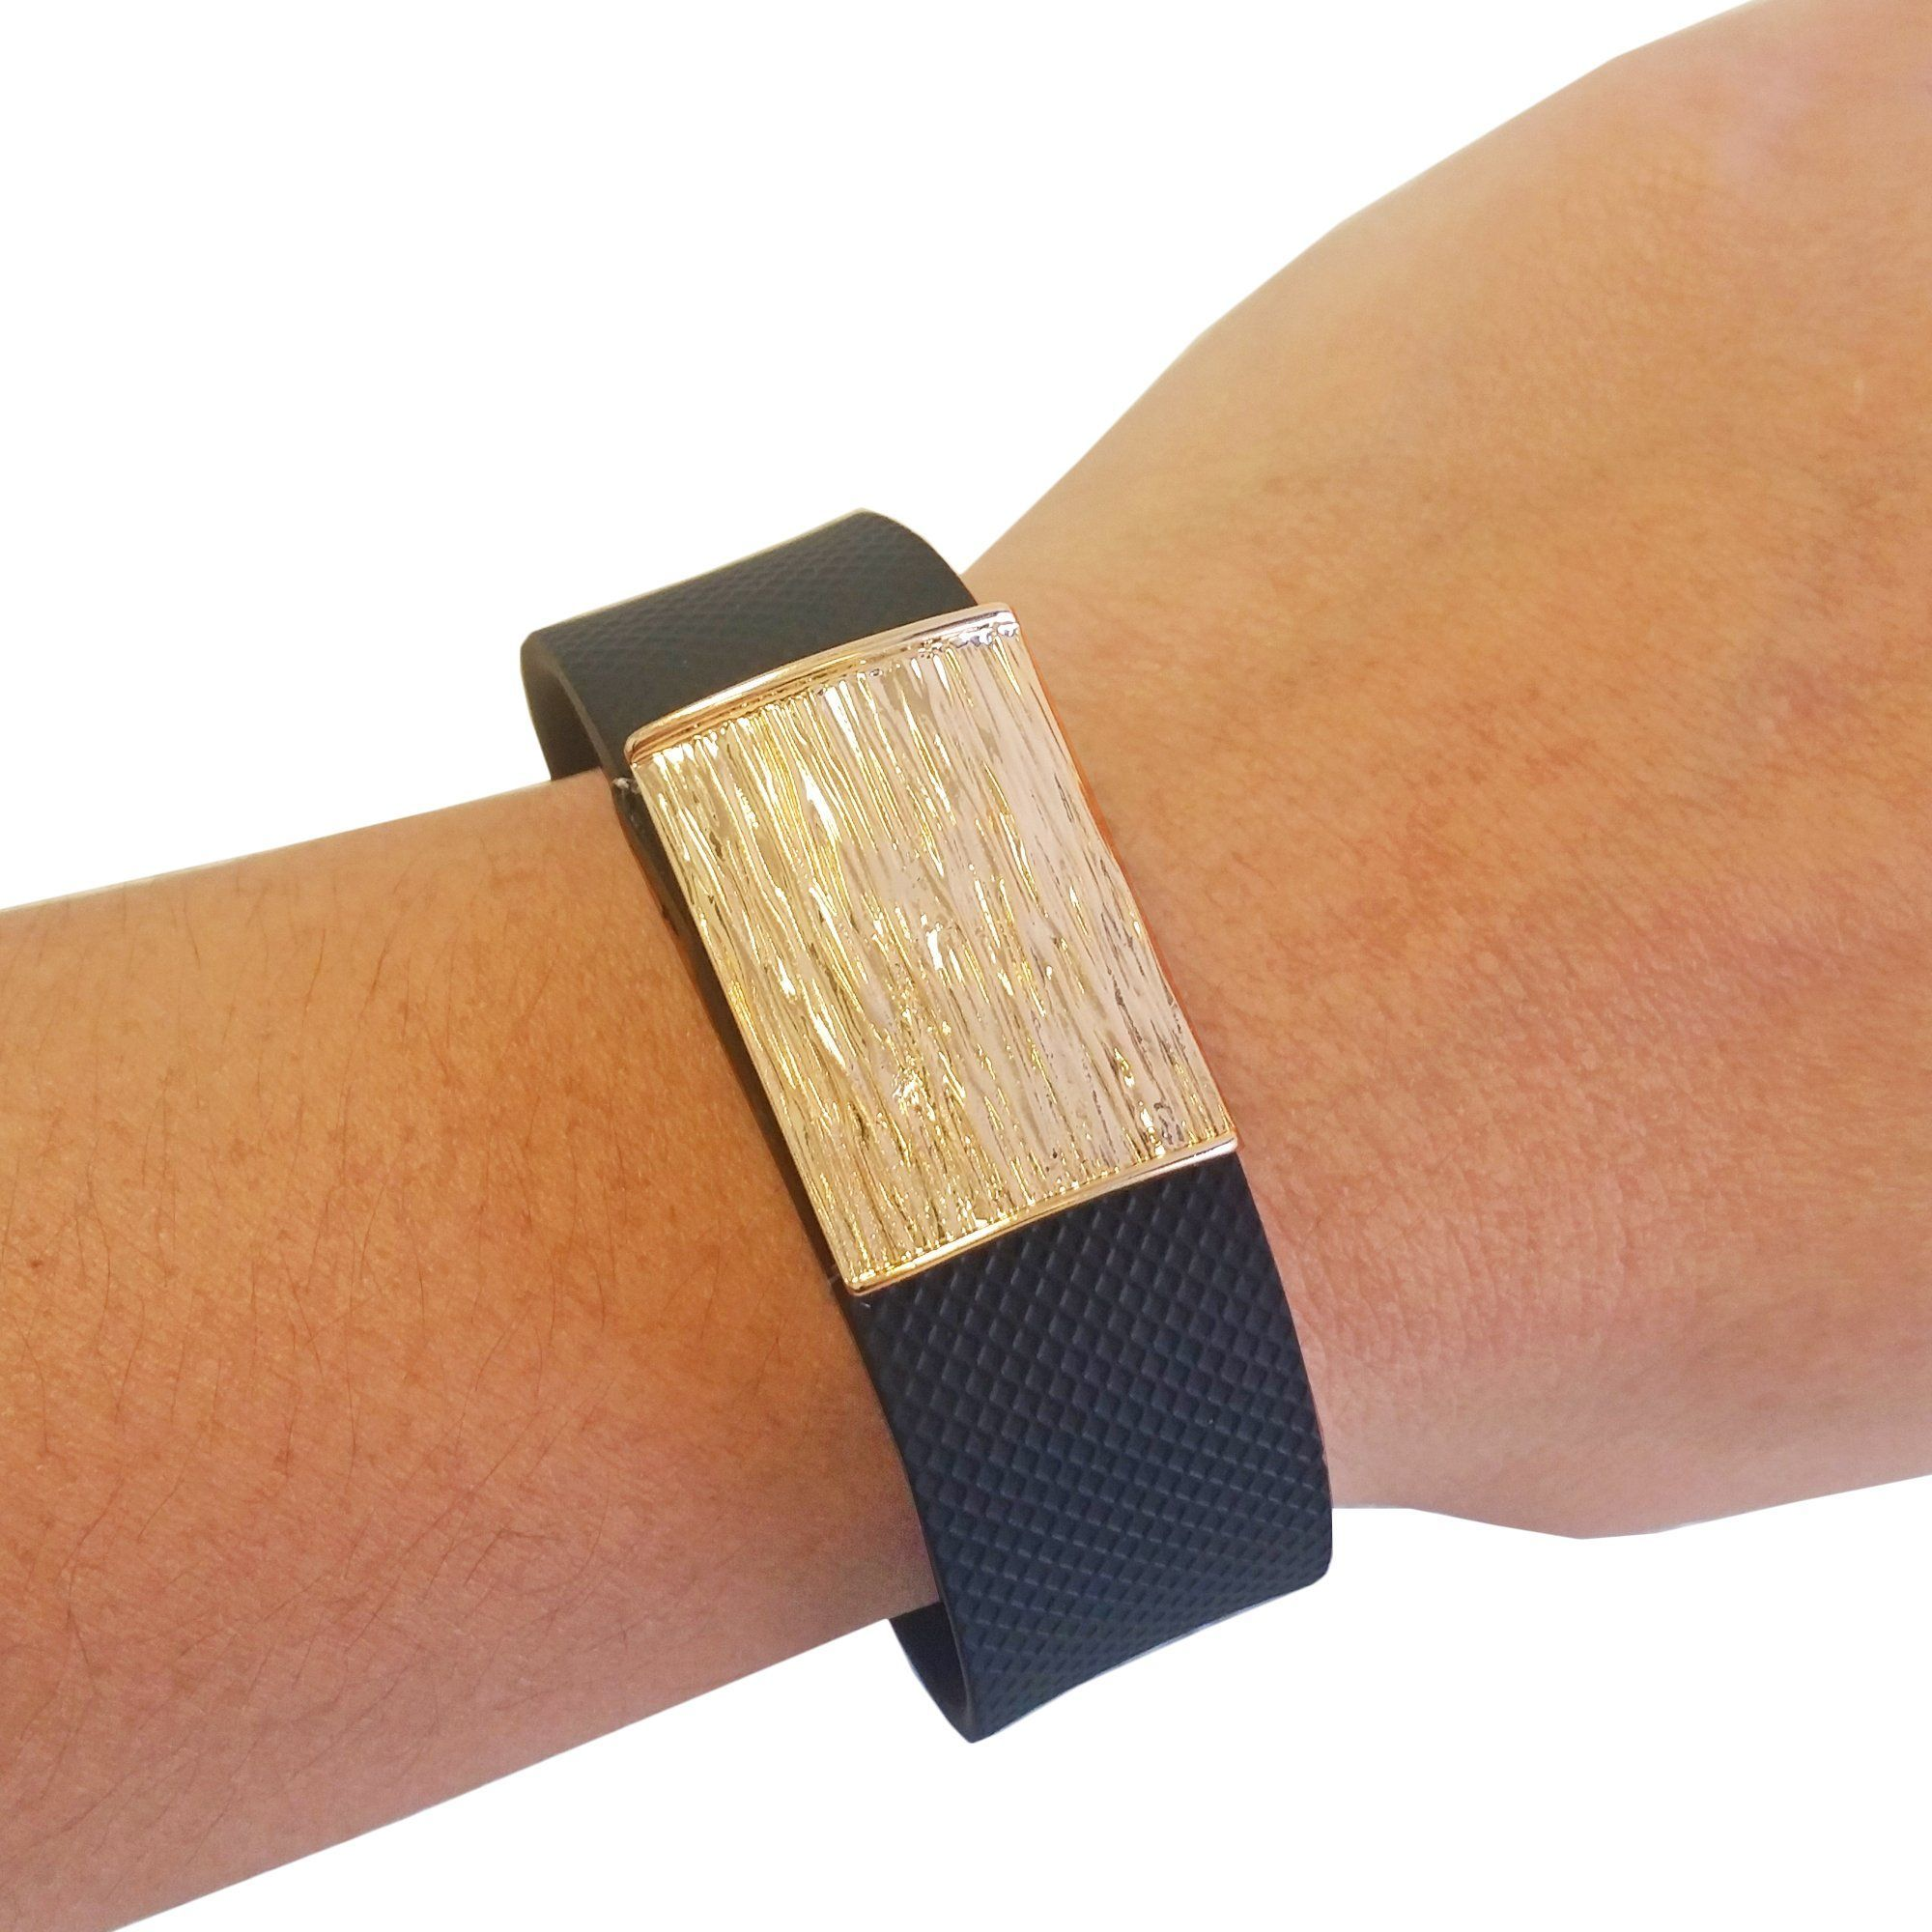 Charm to accessorize the fitbit charge and other fitness trackers